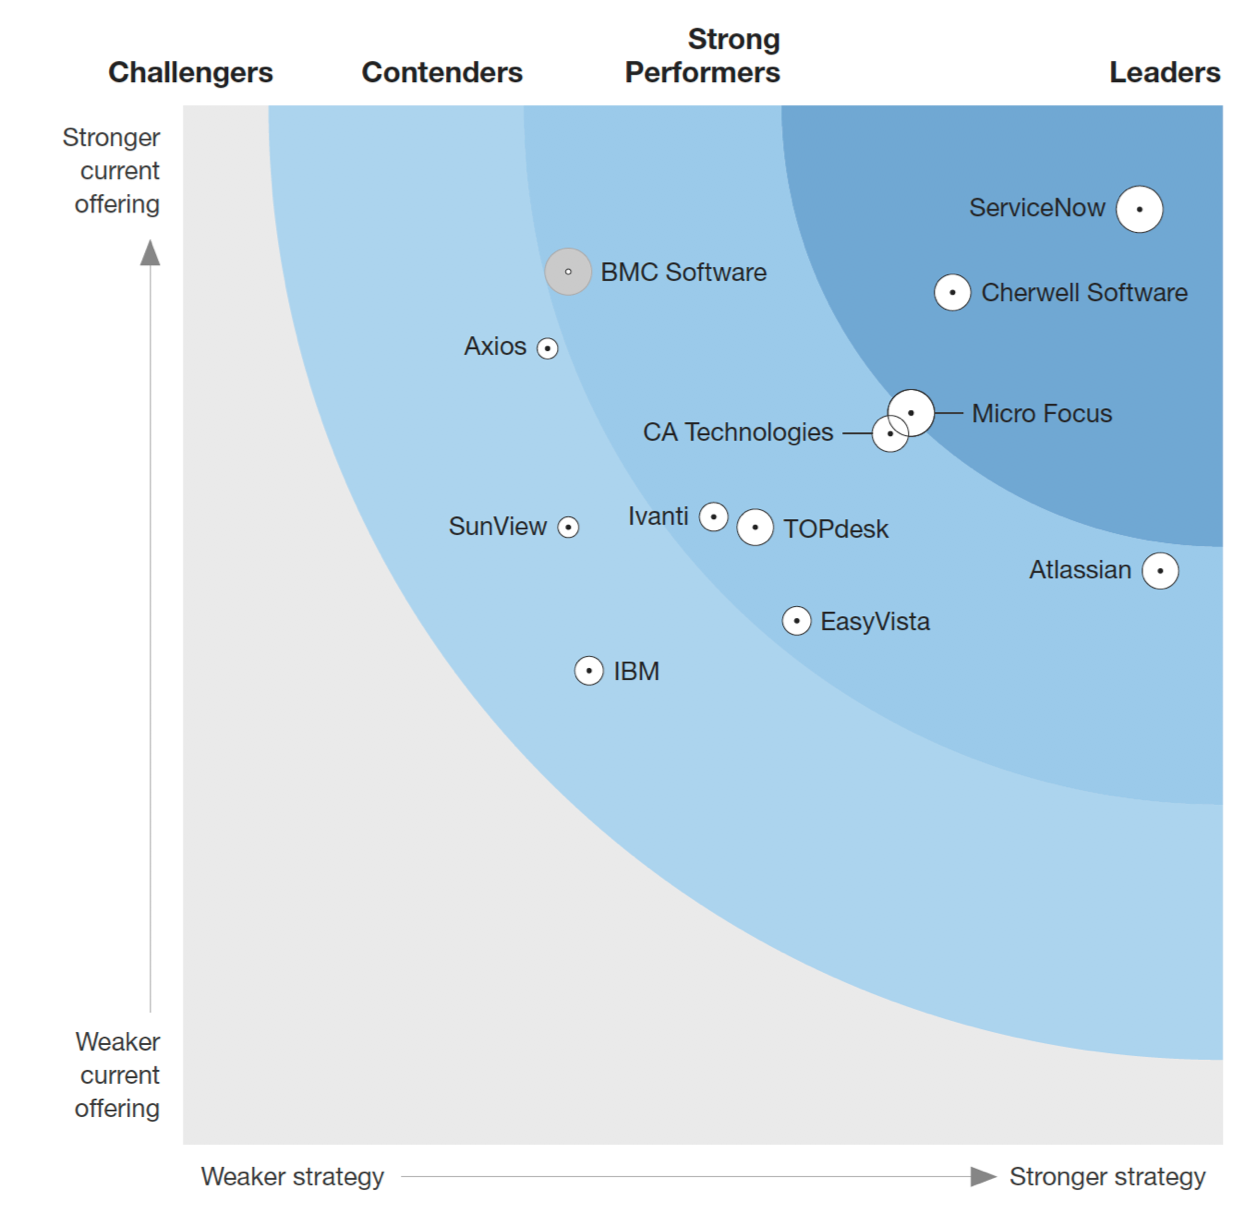 The Forrester Wave™: Enterprise Service Management, Q3 2018